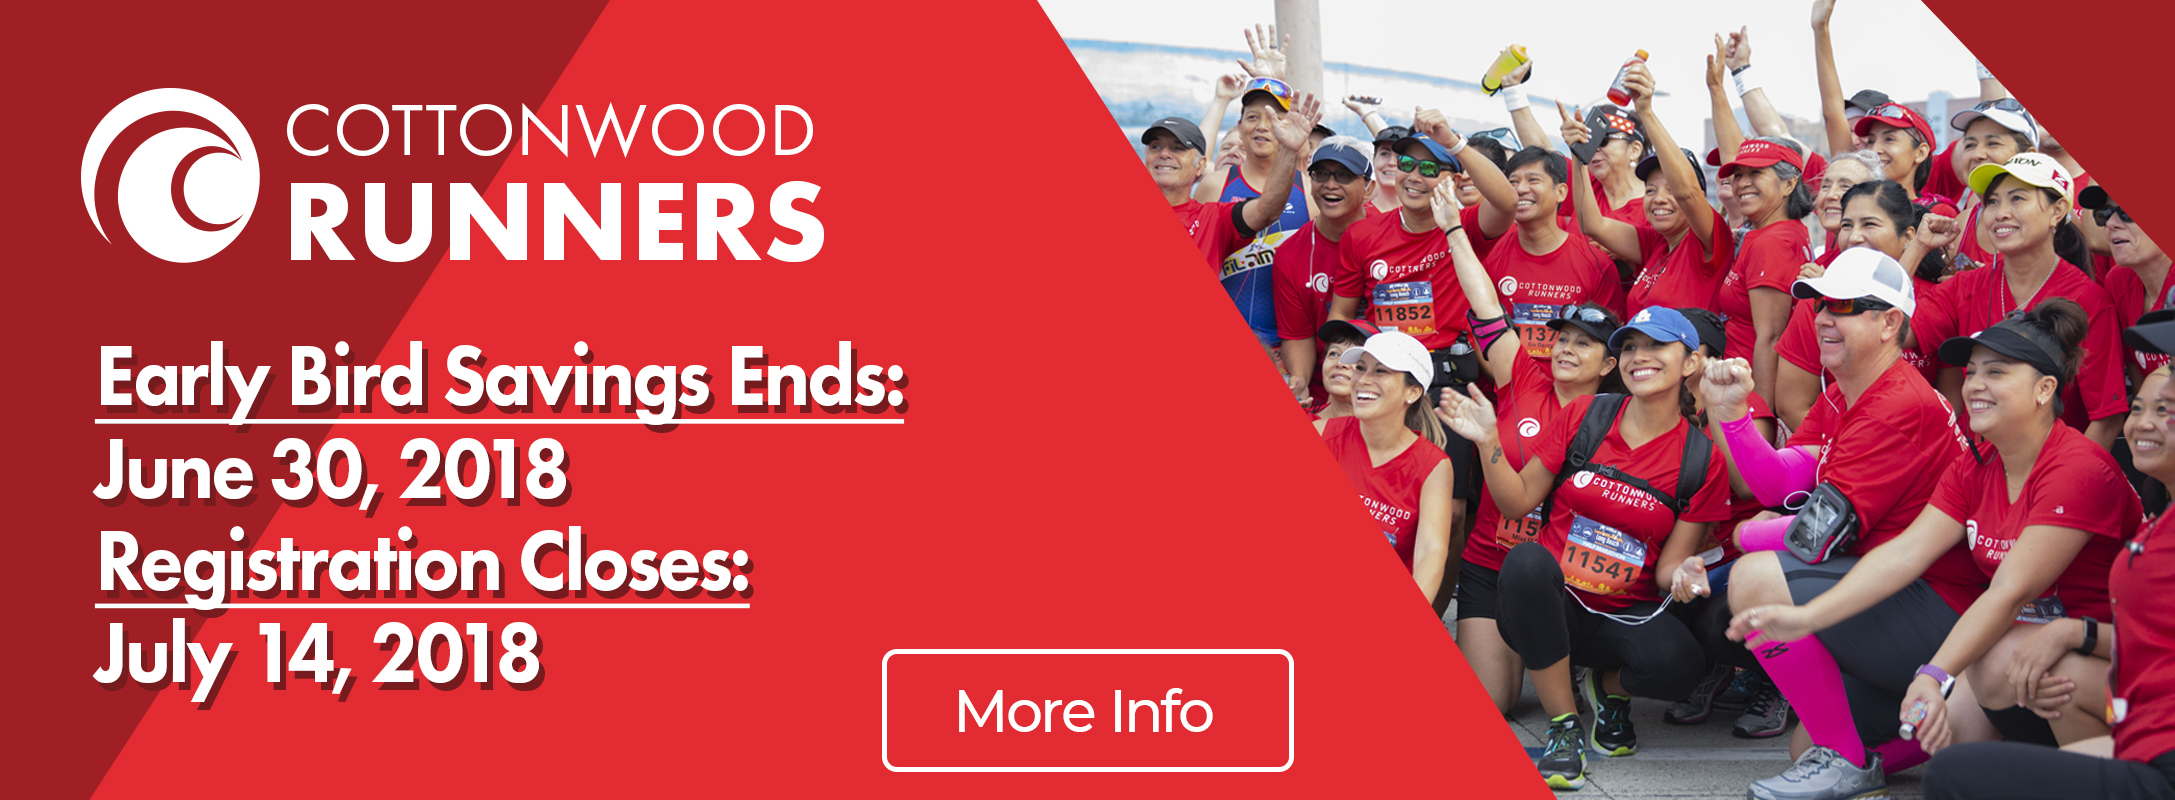 Cottonwood Runners Early Bird Savings Ends June 30 Registration Closes July 14 208